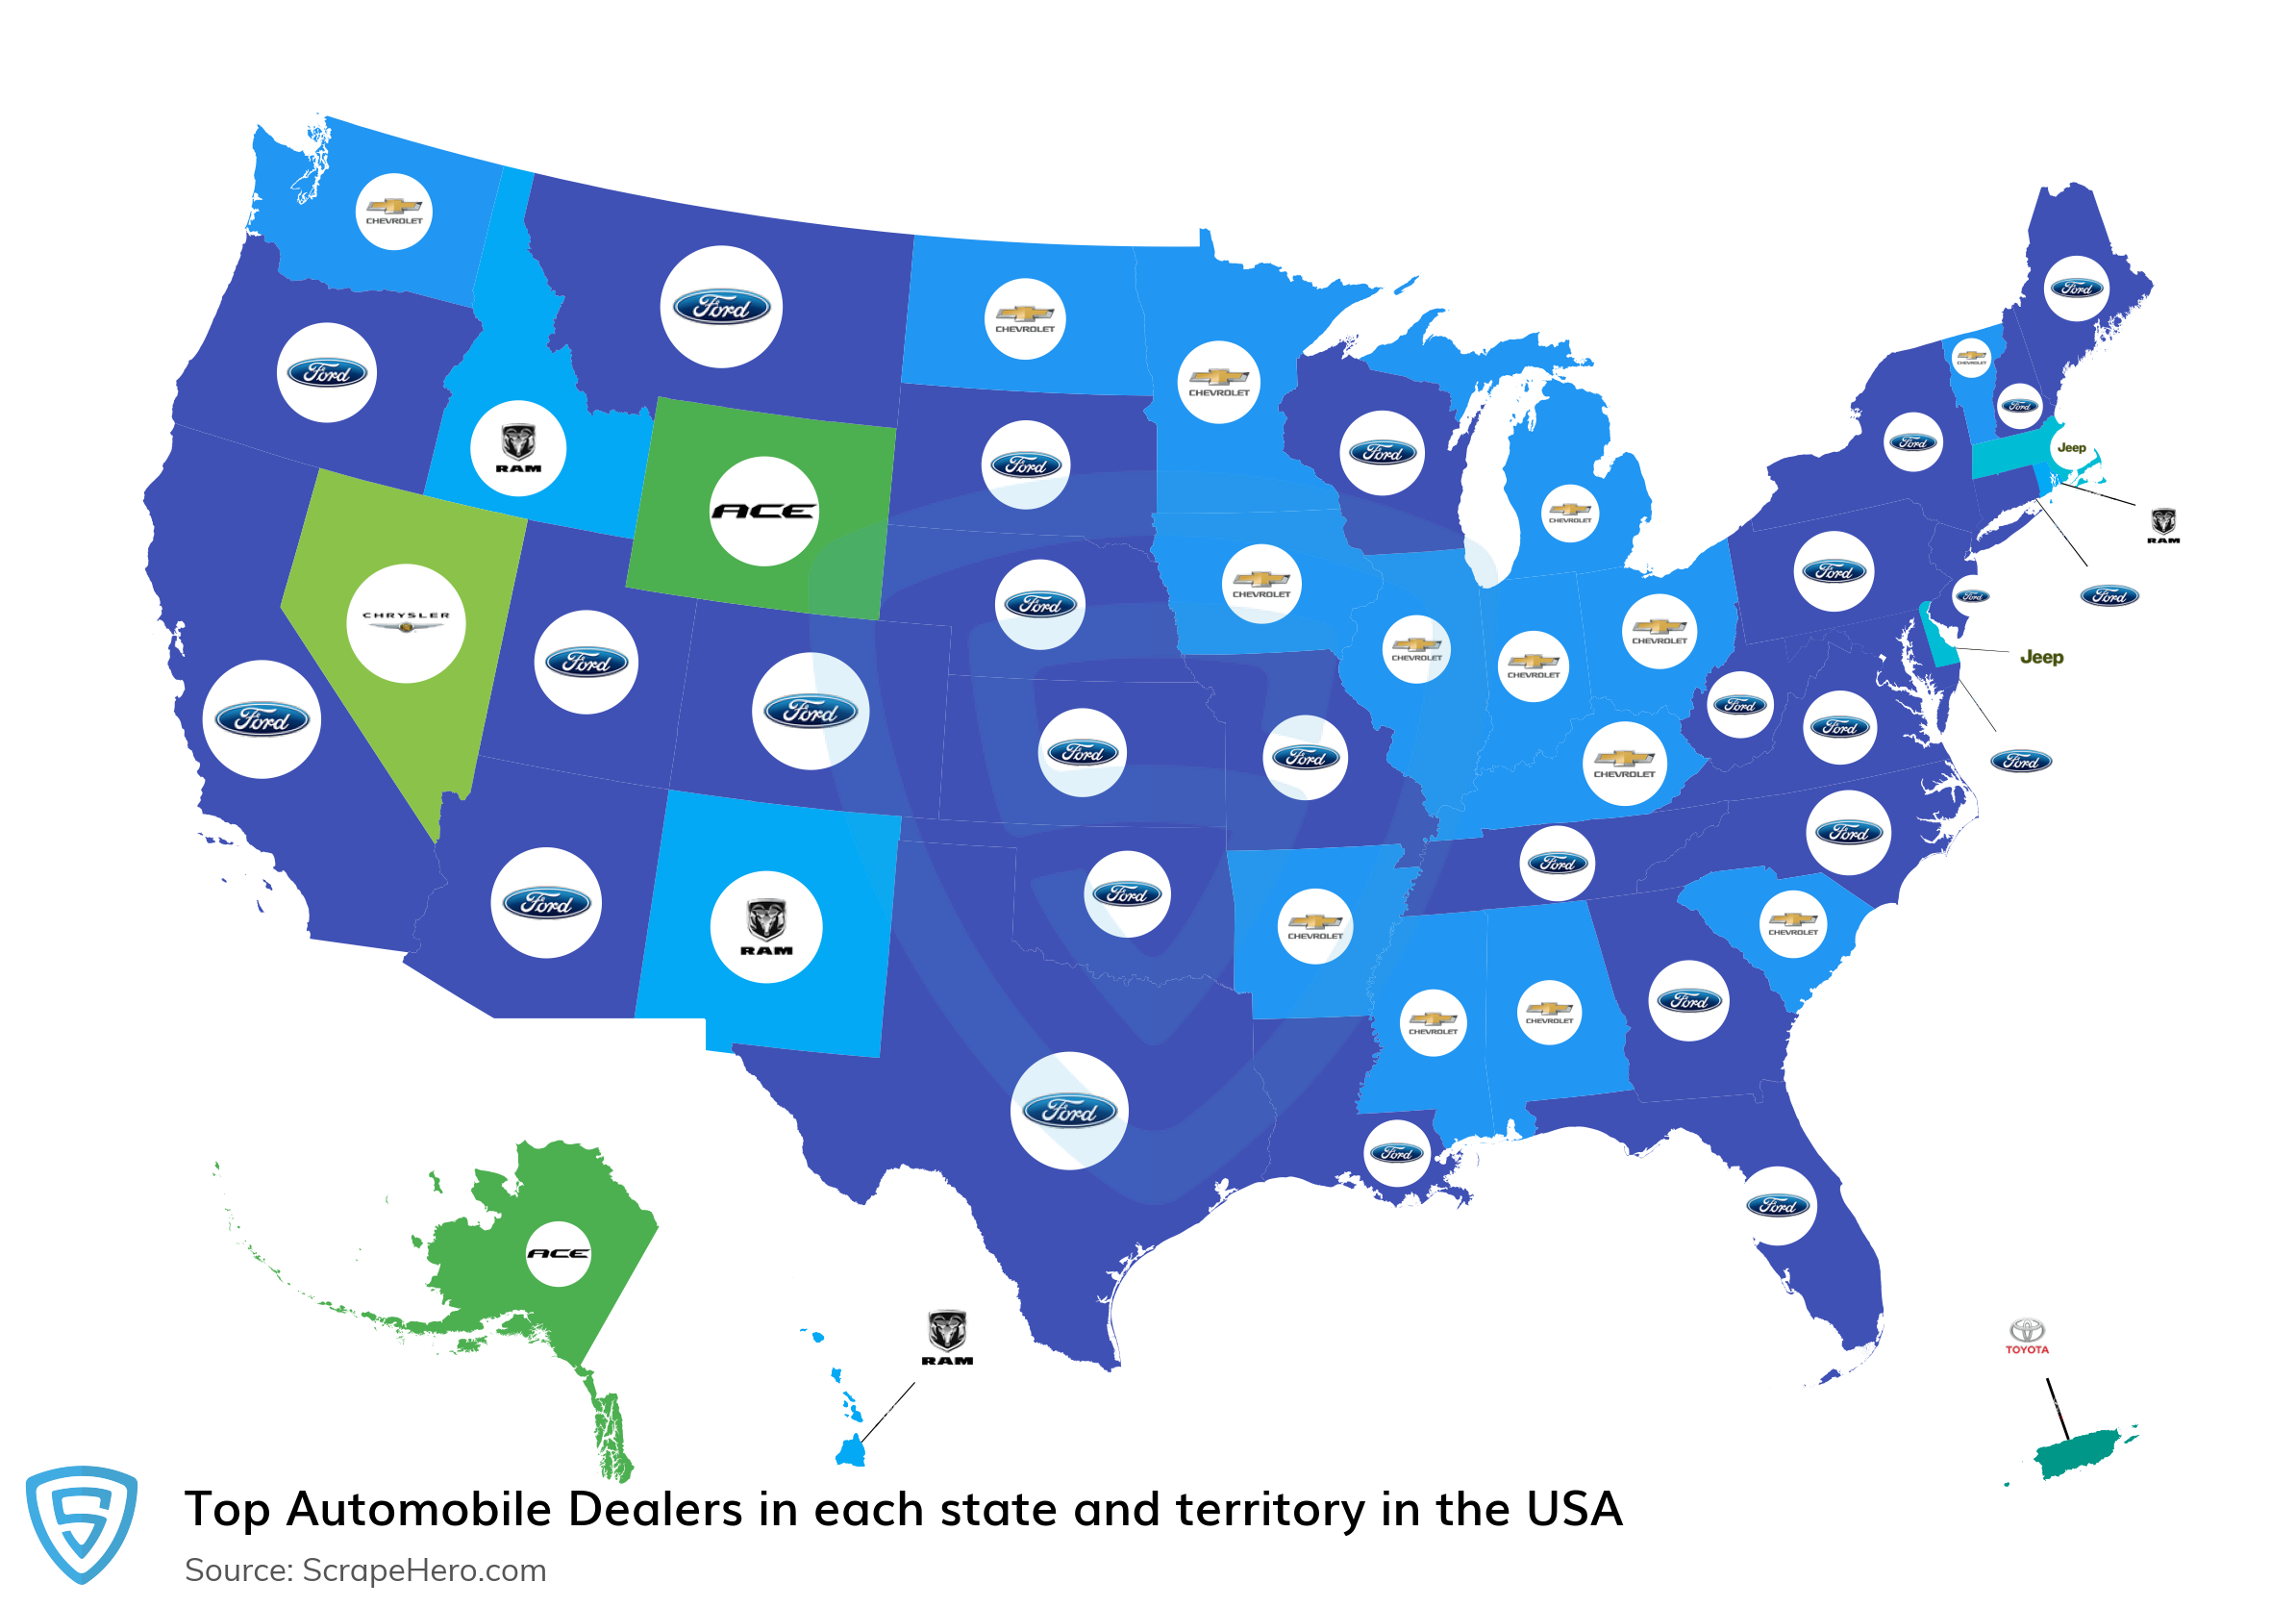 Map of top automobile dealers in each state and territory in the United States in 2021